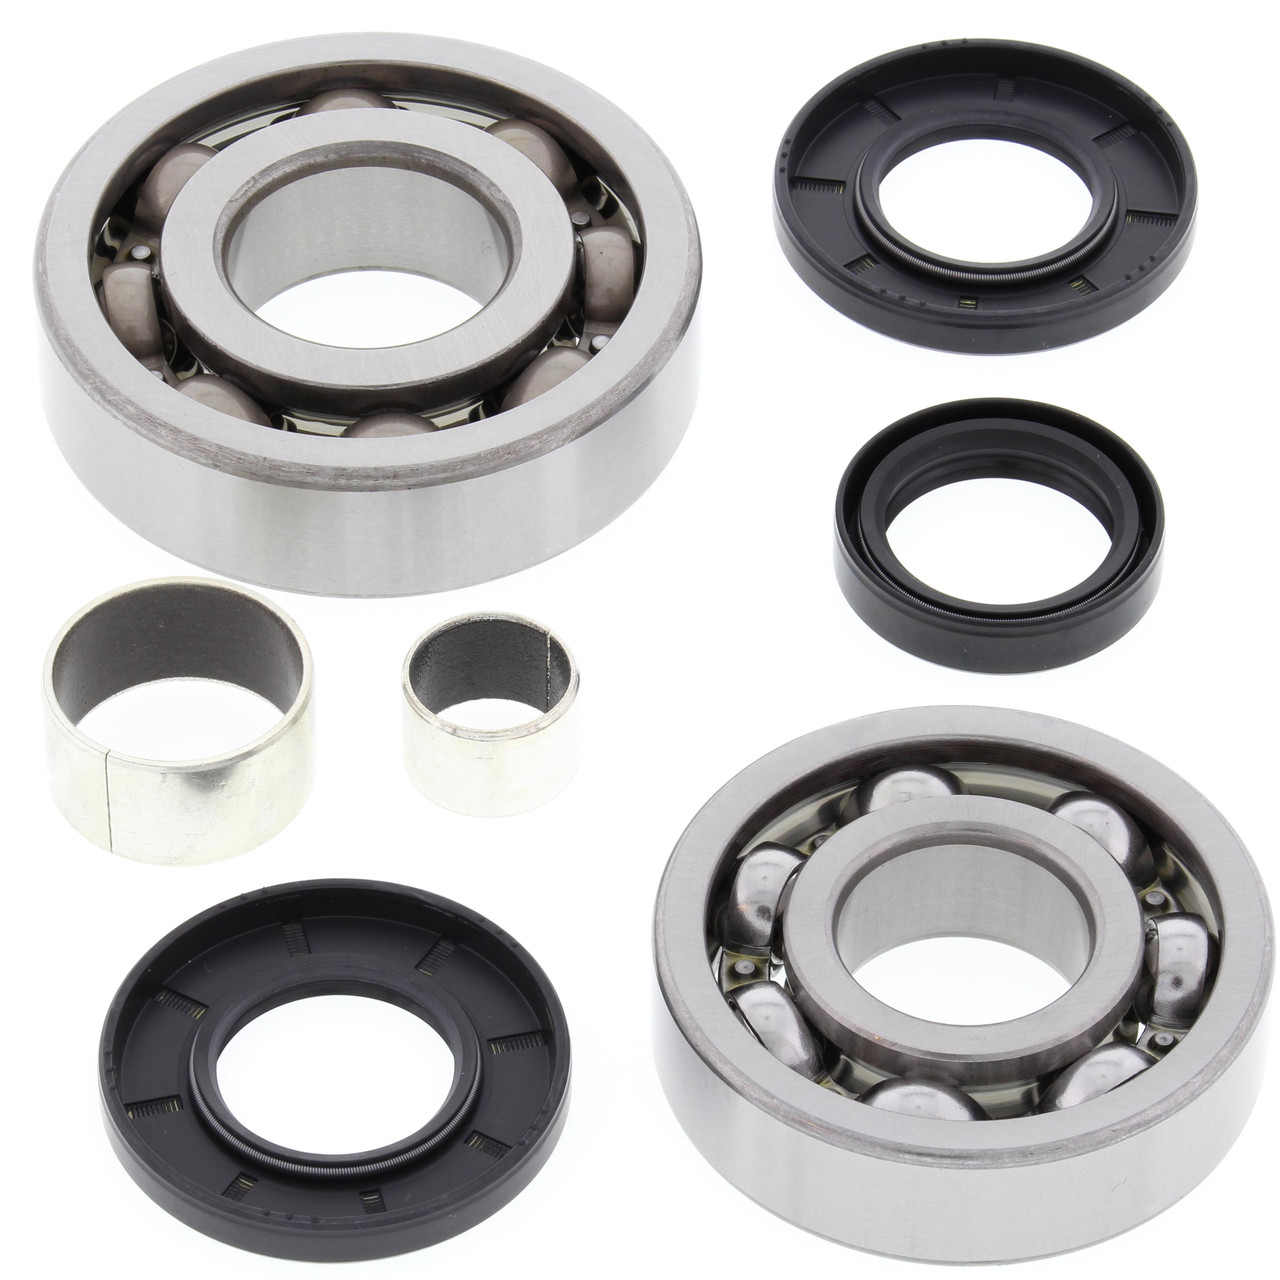 New Front Wheel Bearing Kit Polaris Sportsman 500 4x4 HO 500cc 2001 2002 2003